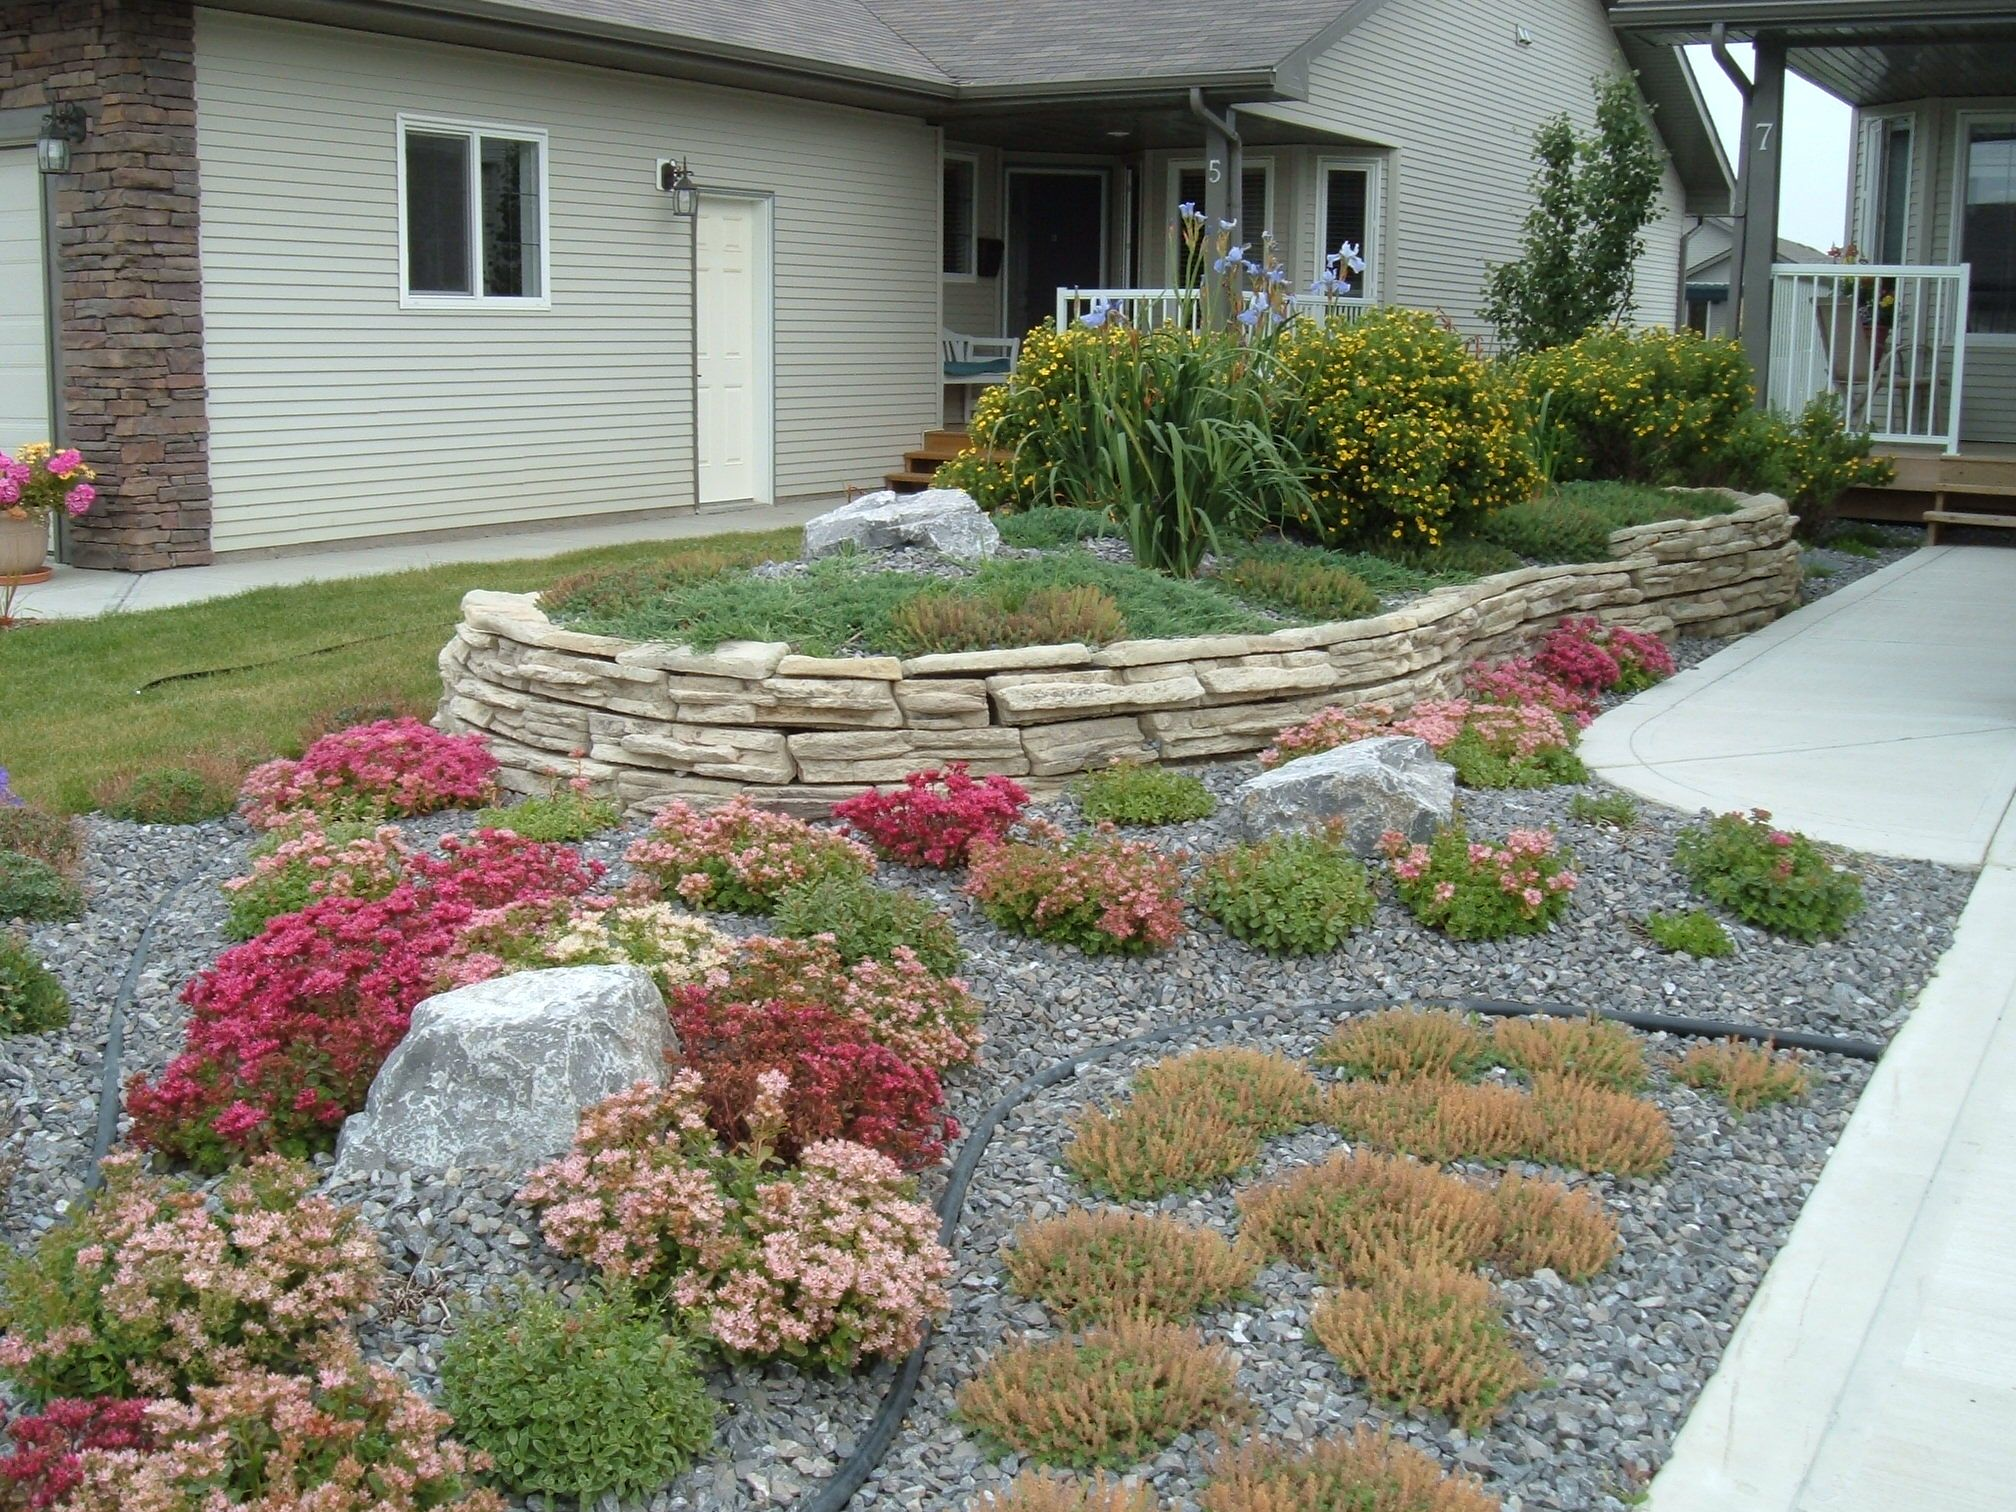 Minimal maintenance landscaping a no lawn front yard with for No maintenance front yard